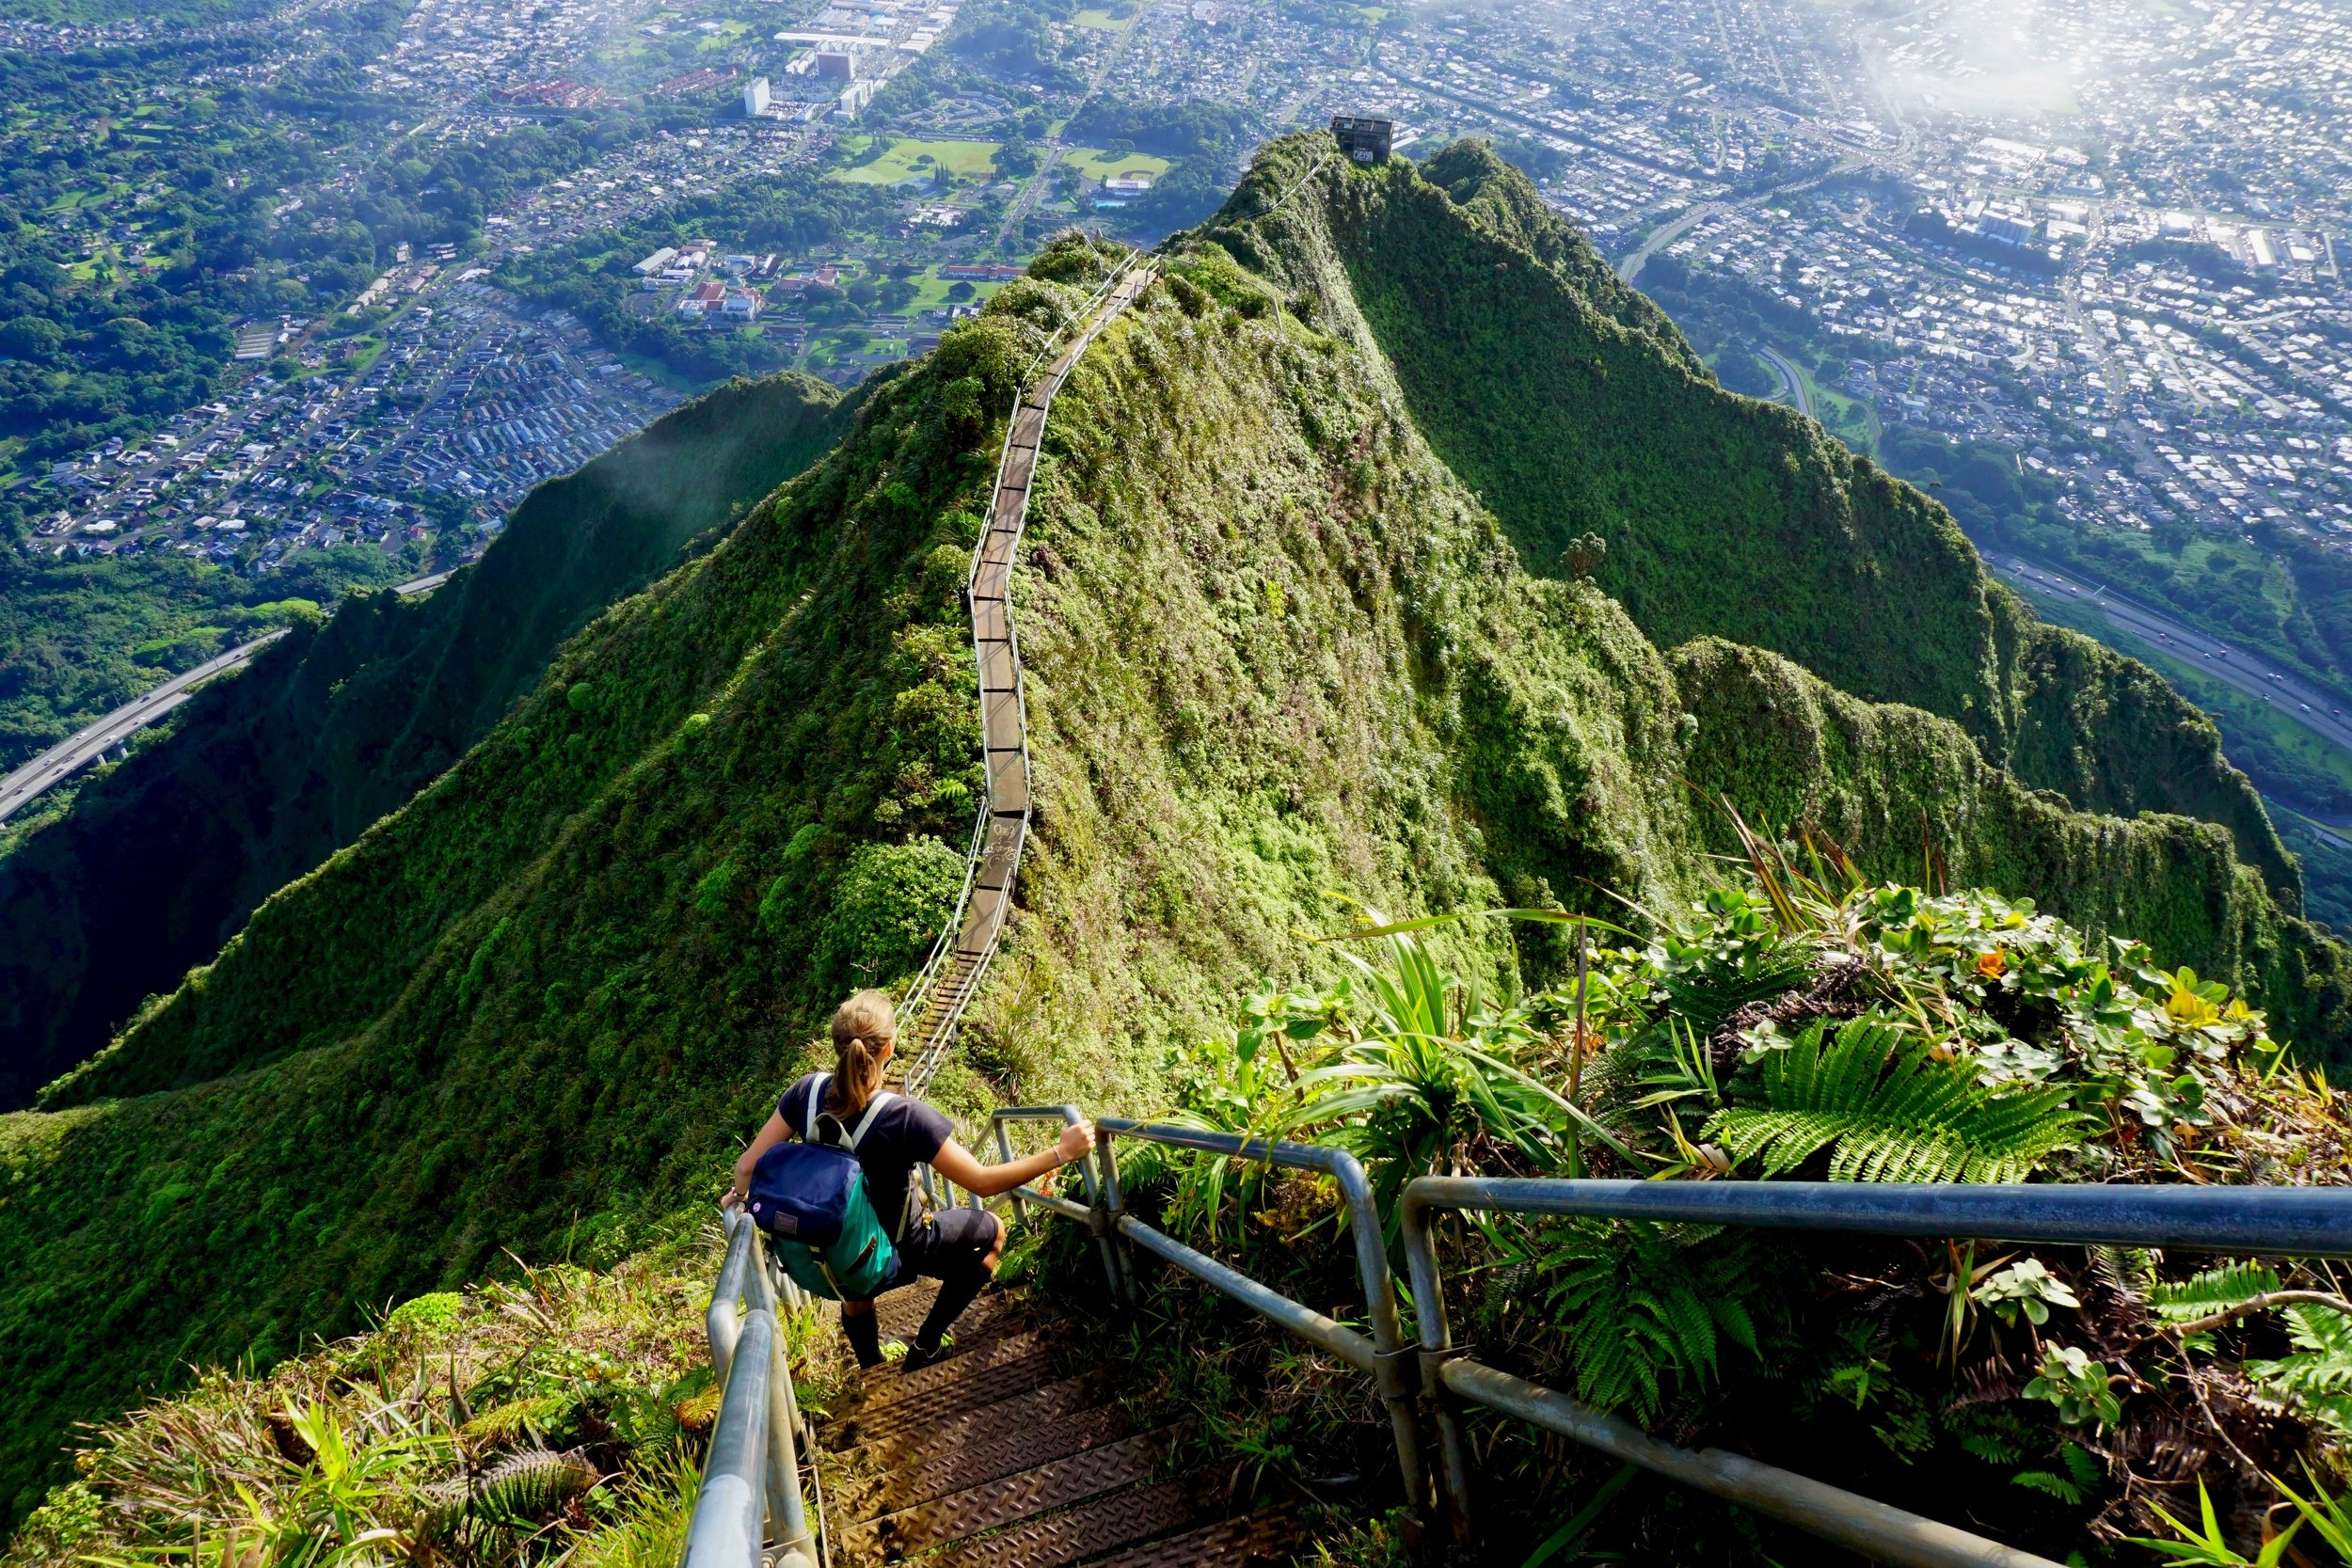 Hawaii safe for solo female travelers